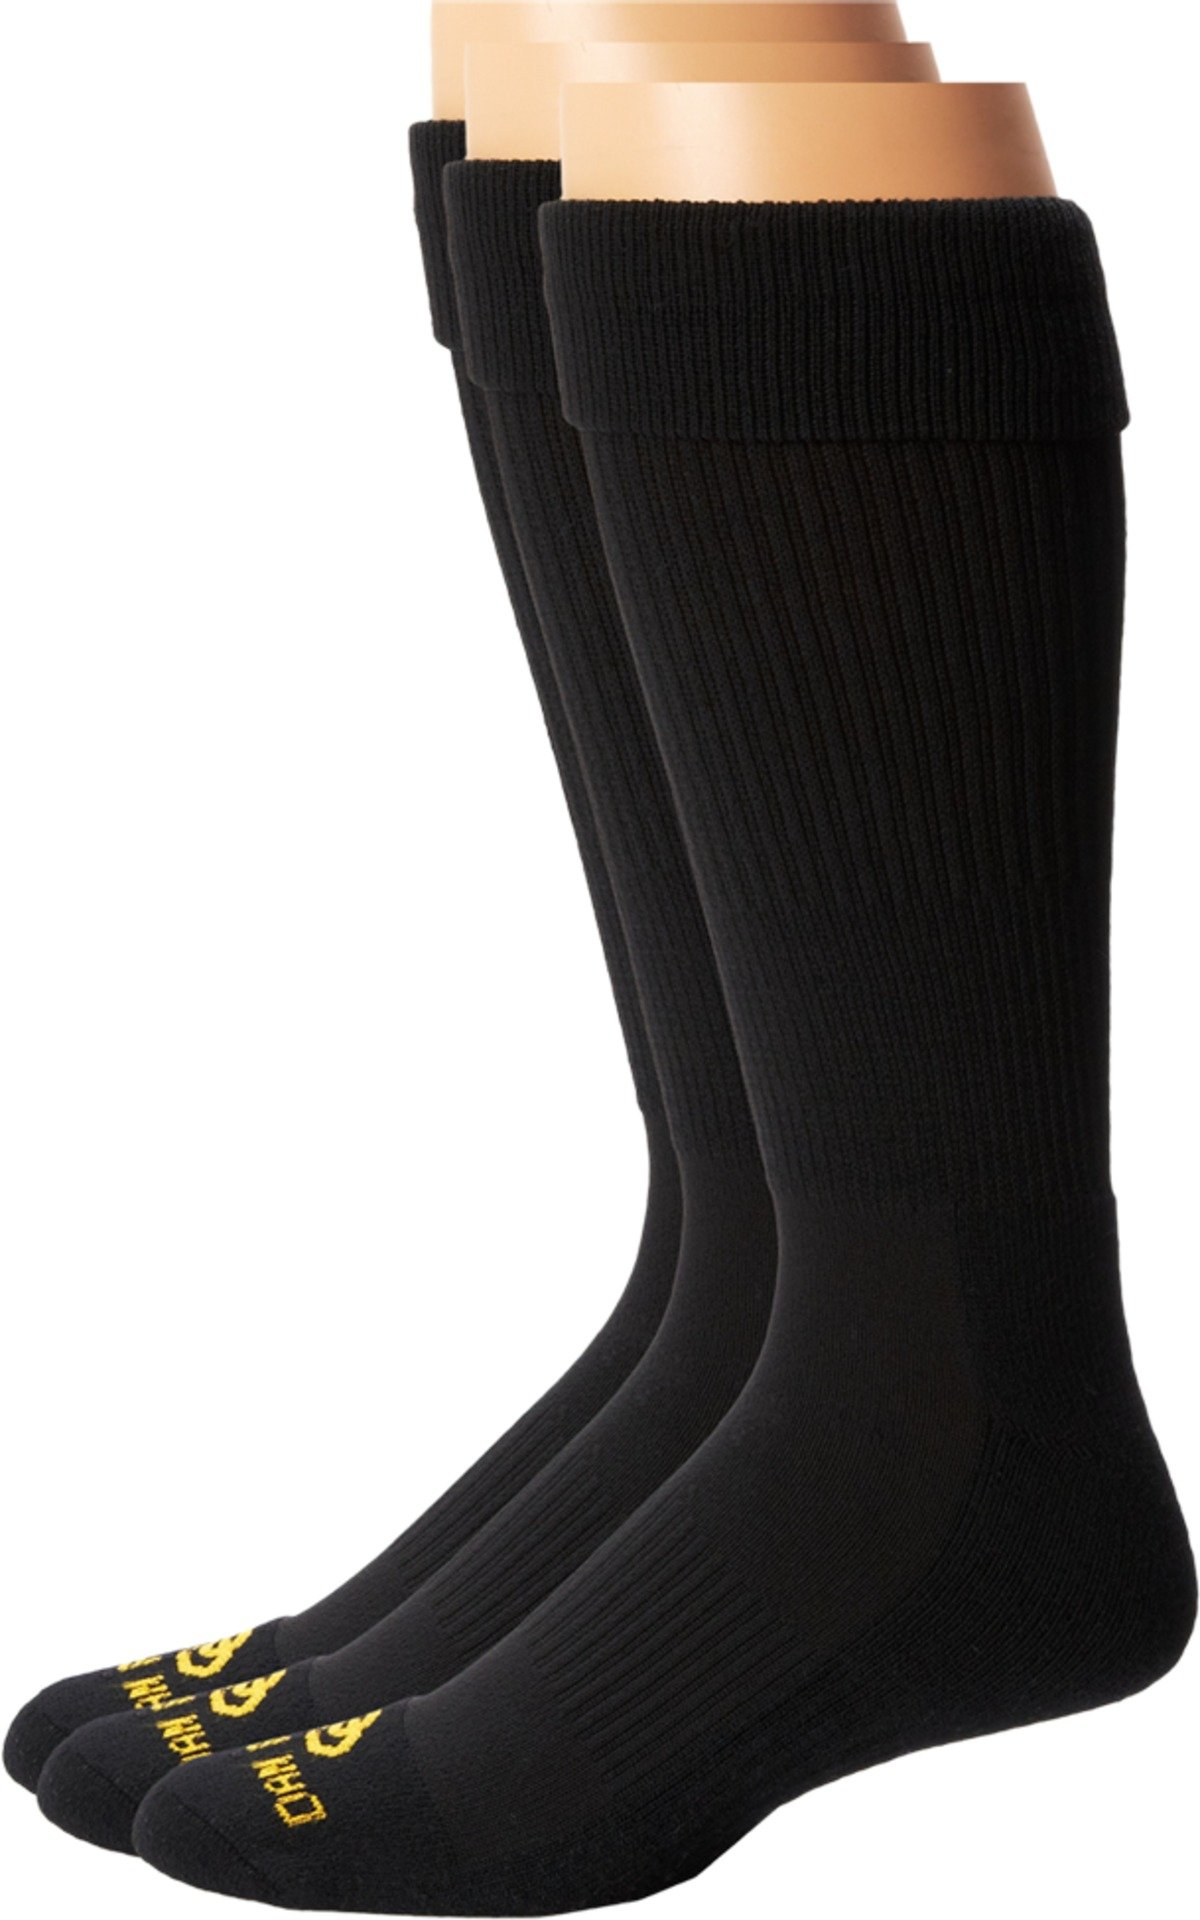 Dan Post Mens Dan Post Cowboy Certified Over the Calf Socks 3 Pack